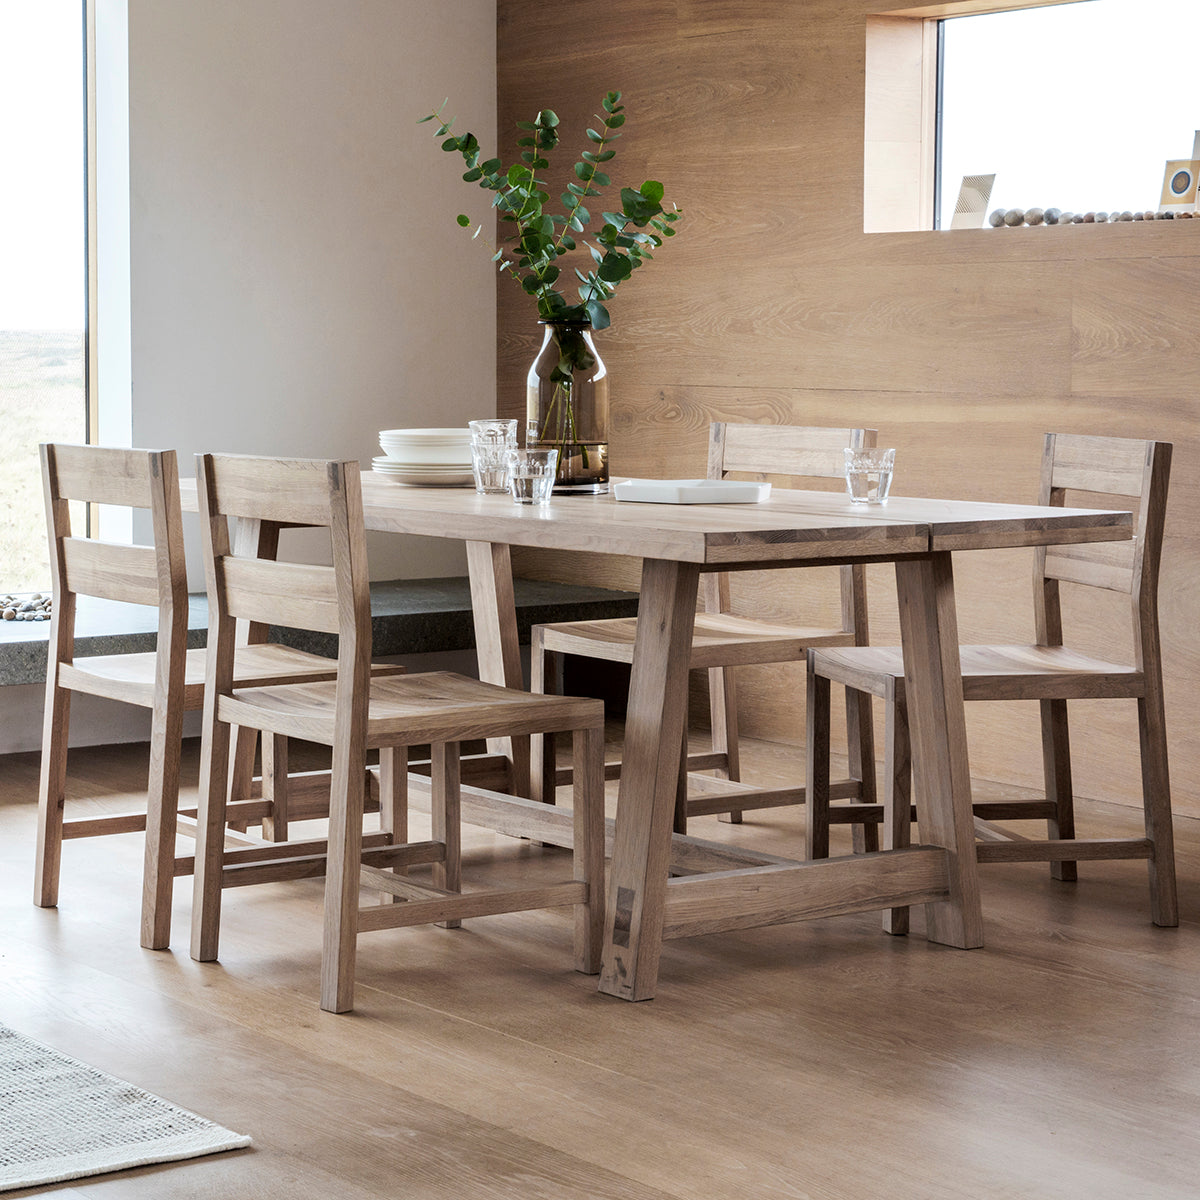 Hexham Small Dining Table - Ezzo